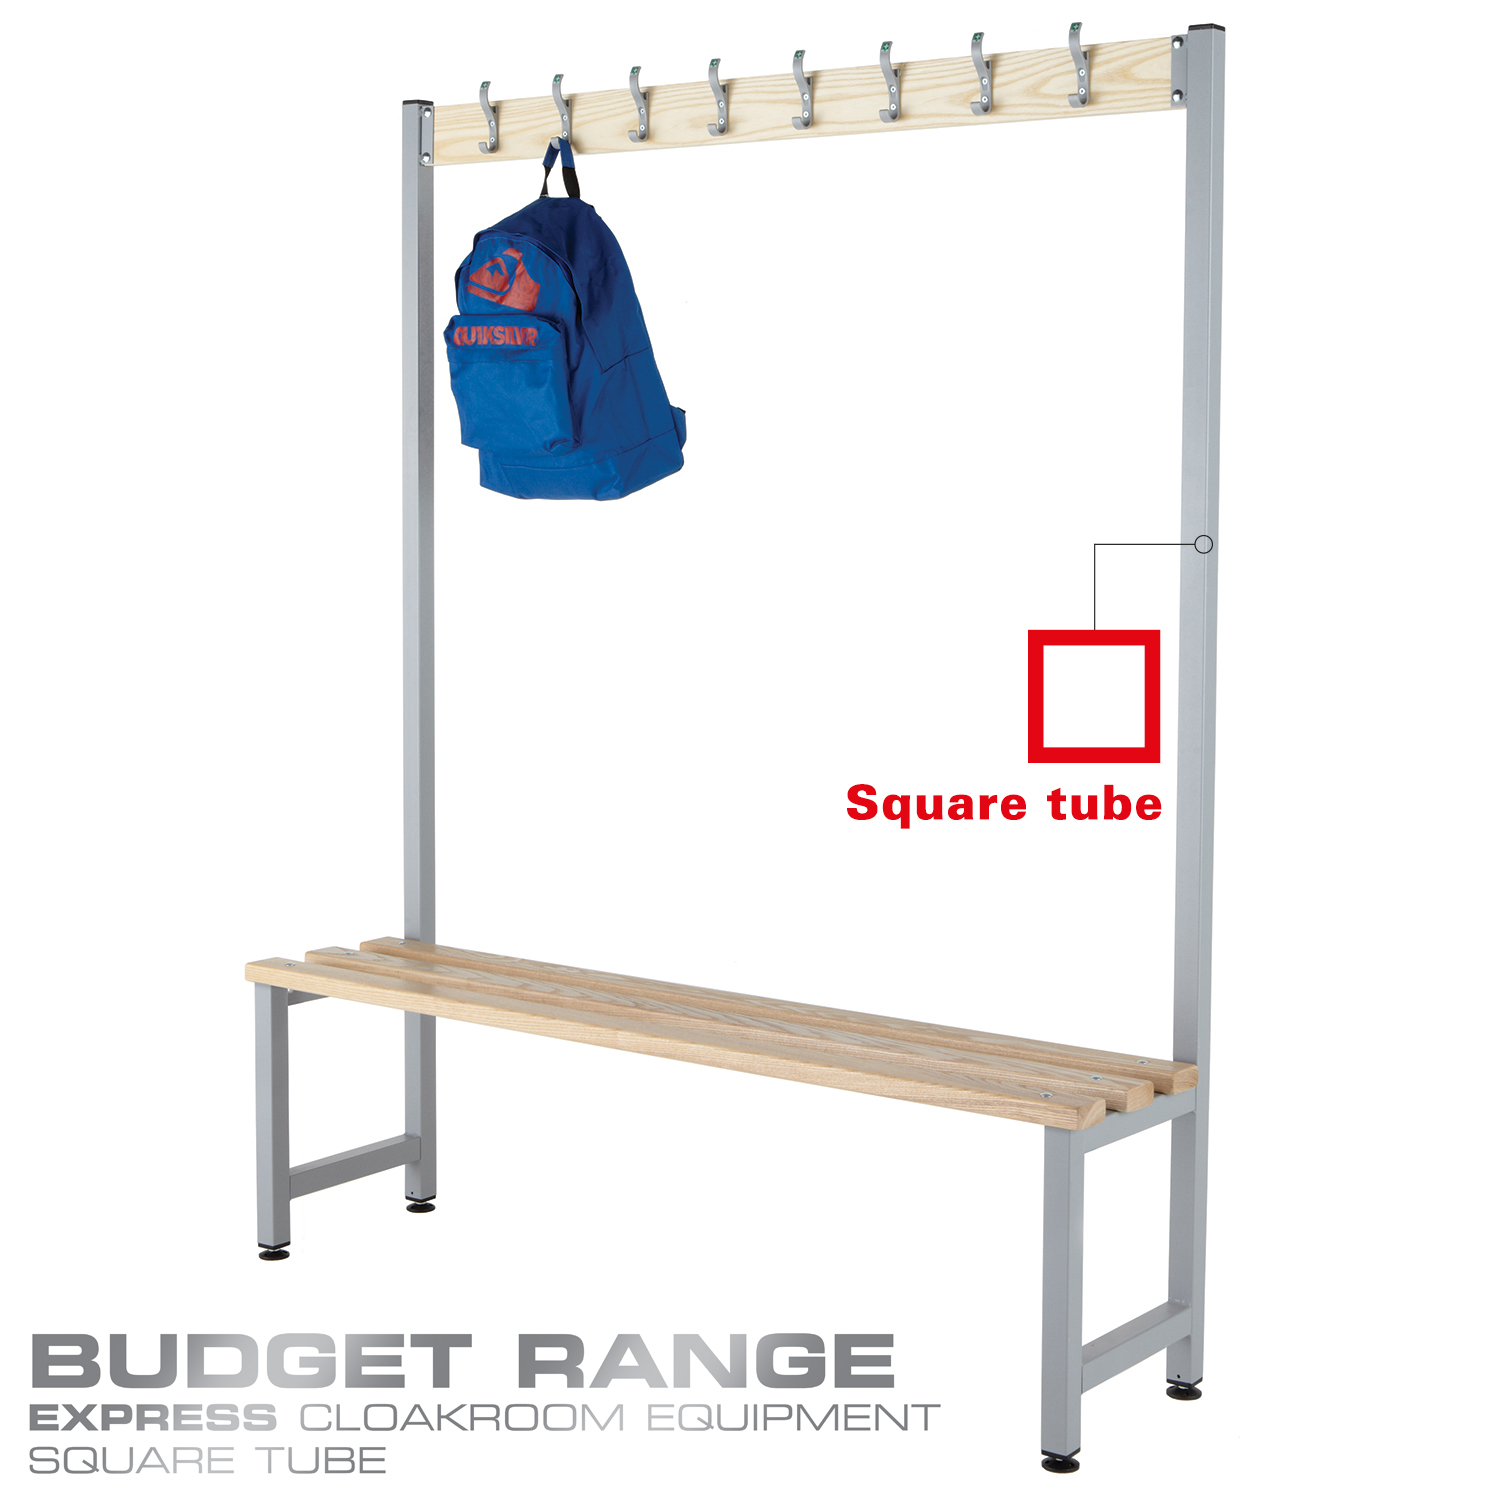 Probe cloakroom single wood bench with hooks in budget range